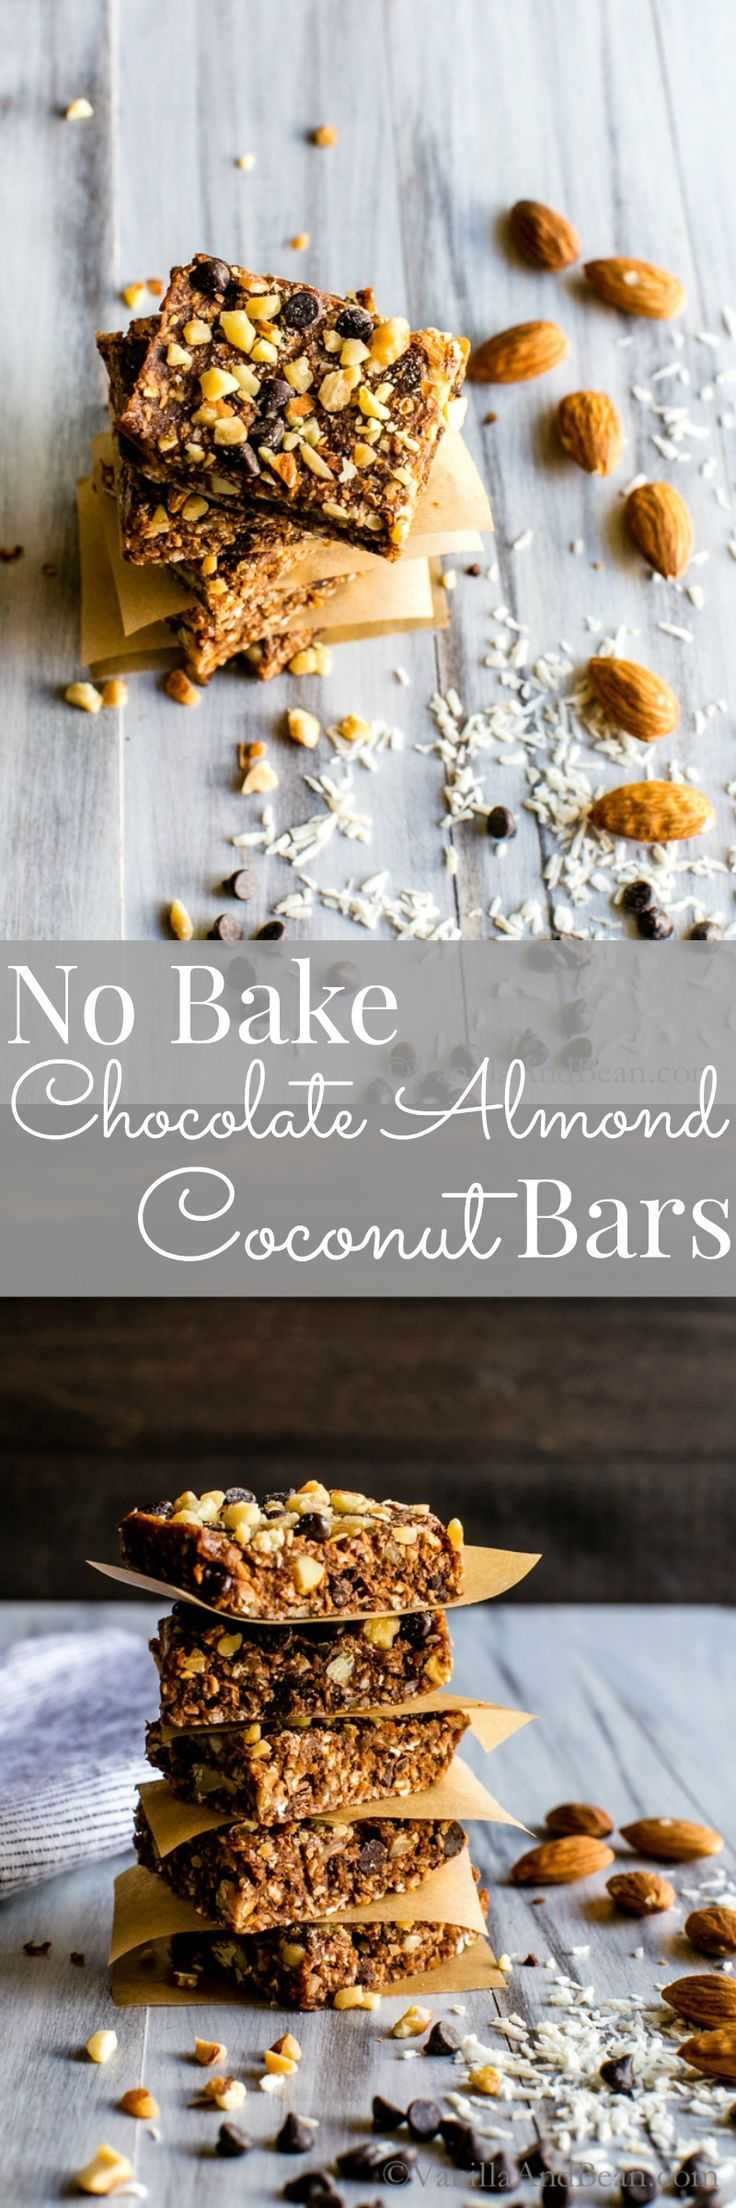 No Bake Vegan Chocolate Almond Coconut Bars from my newly released ebook… Grab n Go Snacks for Crazy Busy Days | Healthy Recipes | Healthy Ebook | Vegetarian Recipes | Vegan Recipes